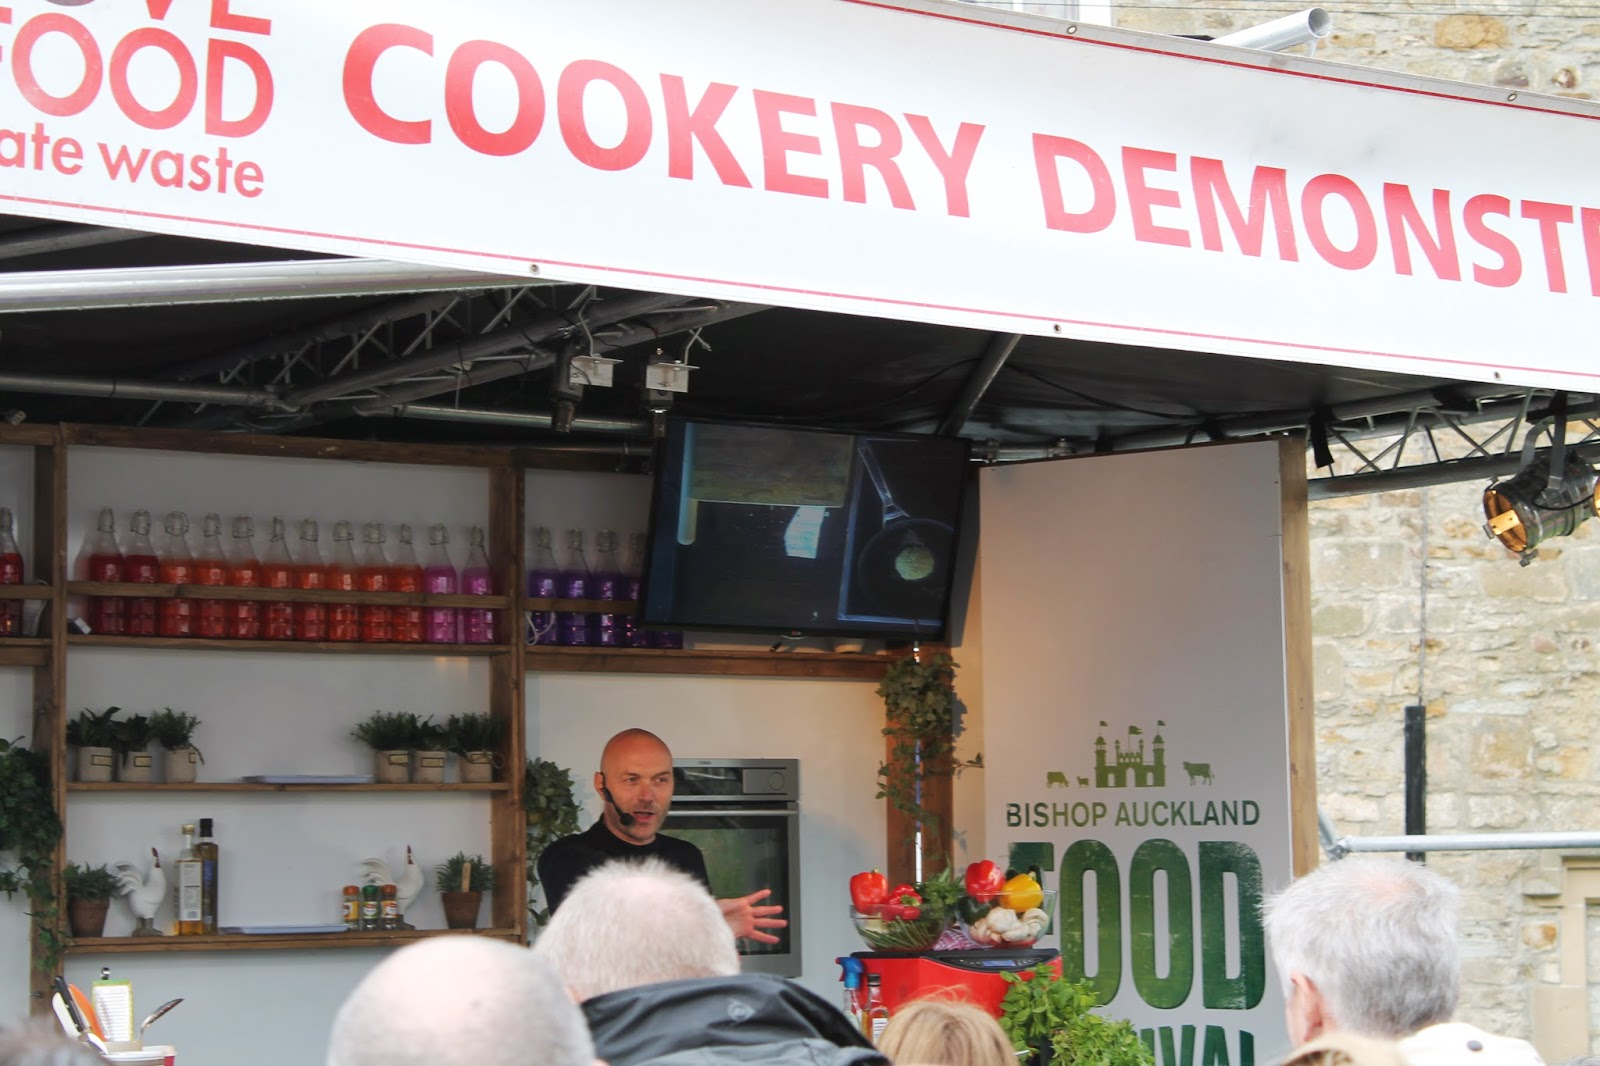 Bishop Auckland Food Festival 2014 - Cookery Demo - Simon Rimmer